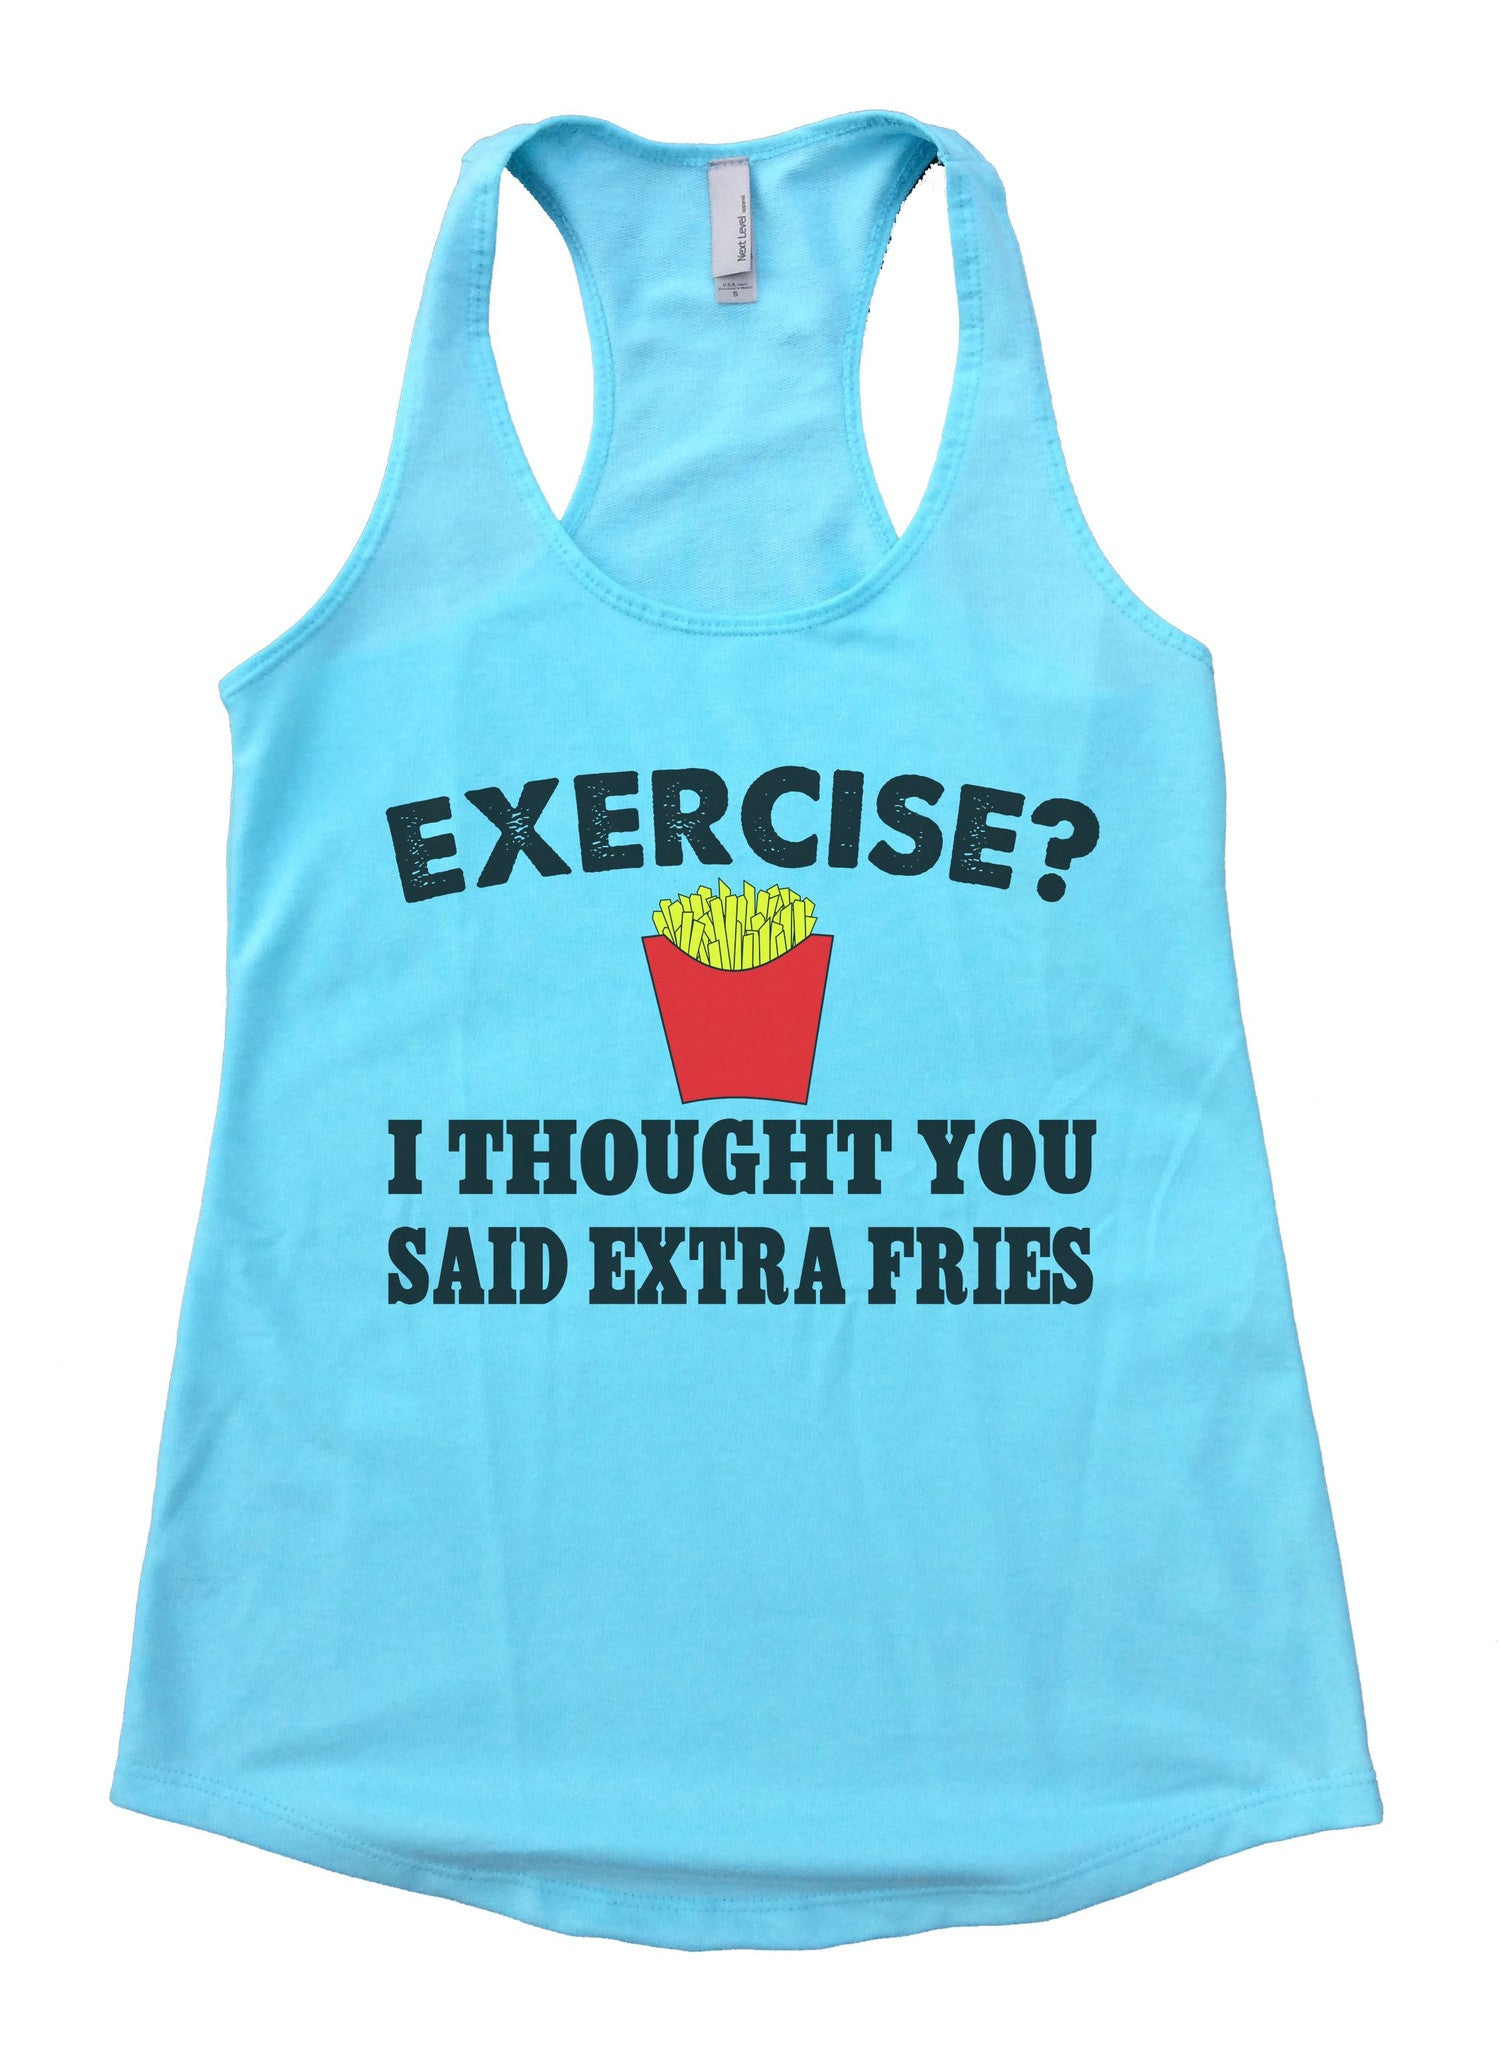 Exercise? I Thought You Said Extra Fries Womens Workout Tank Top FB32 - Funny Shirts Tank Tops Burnouts and Triblends  - 1